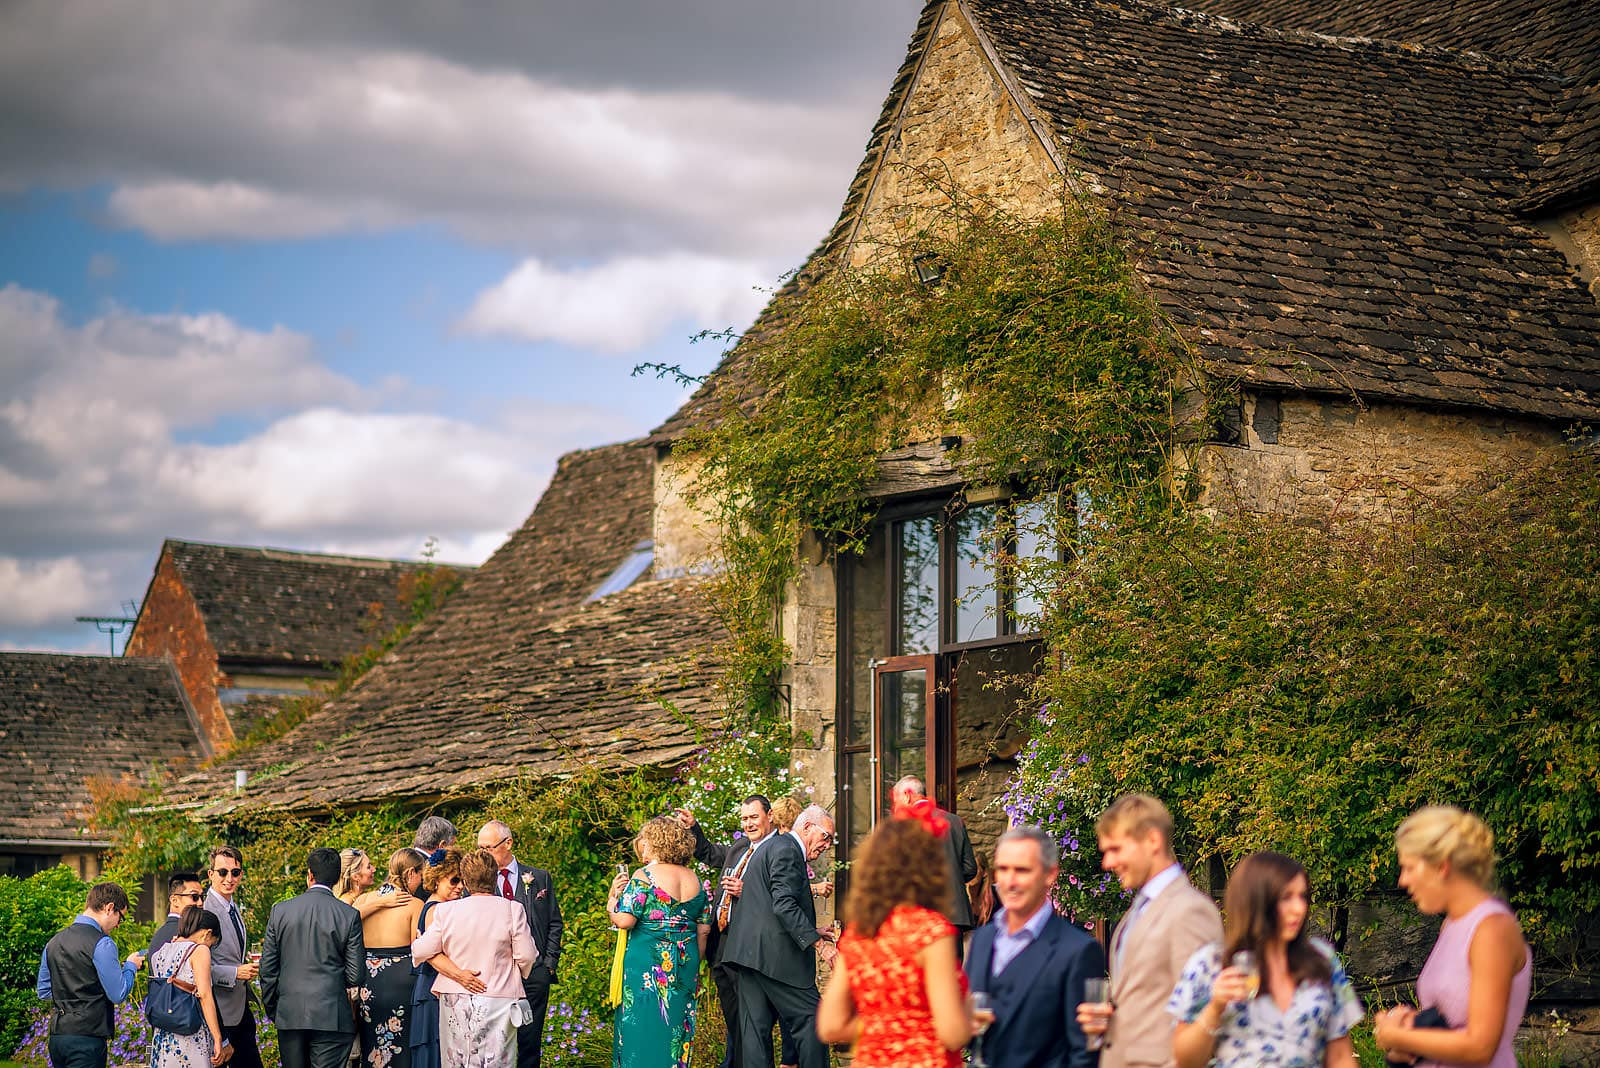 Guests mingling at The Great Tythe Barn